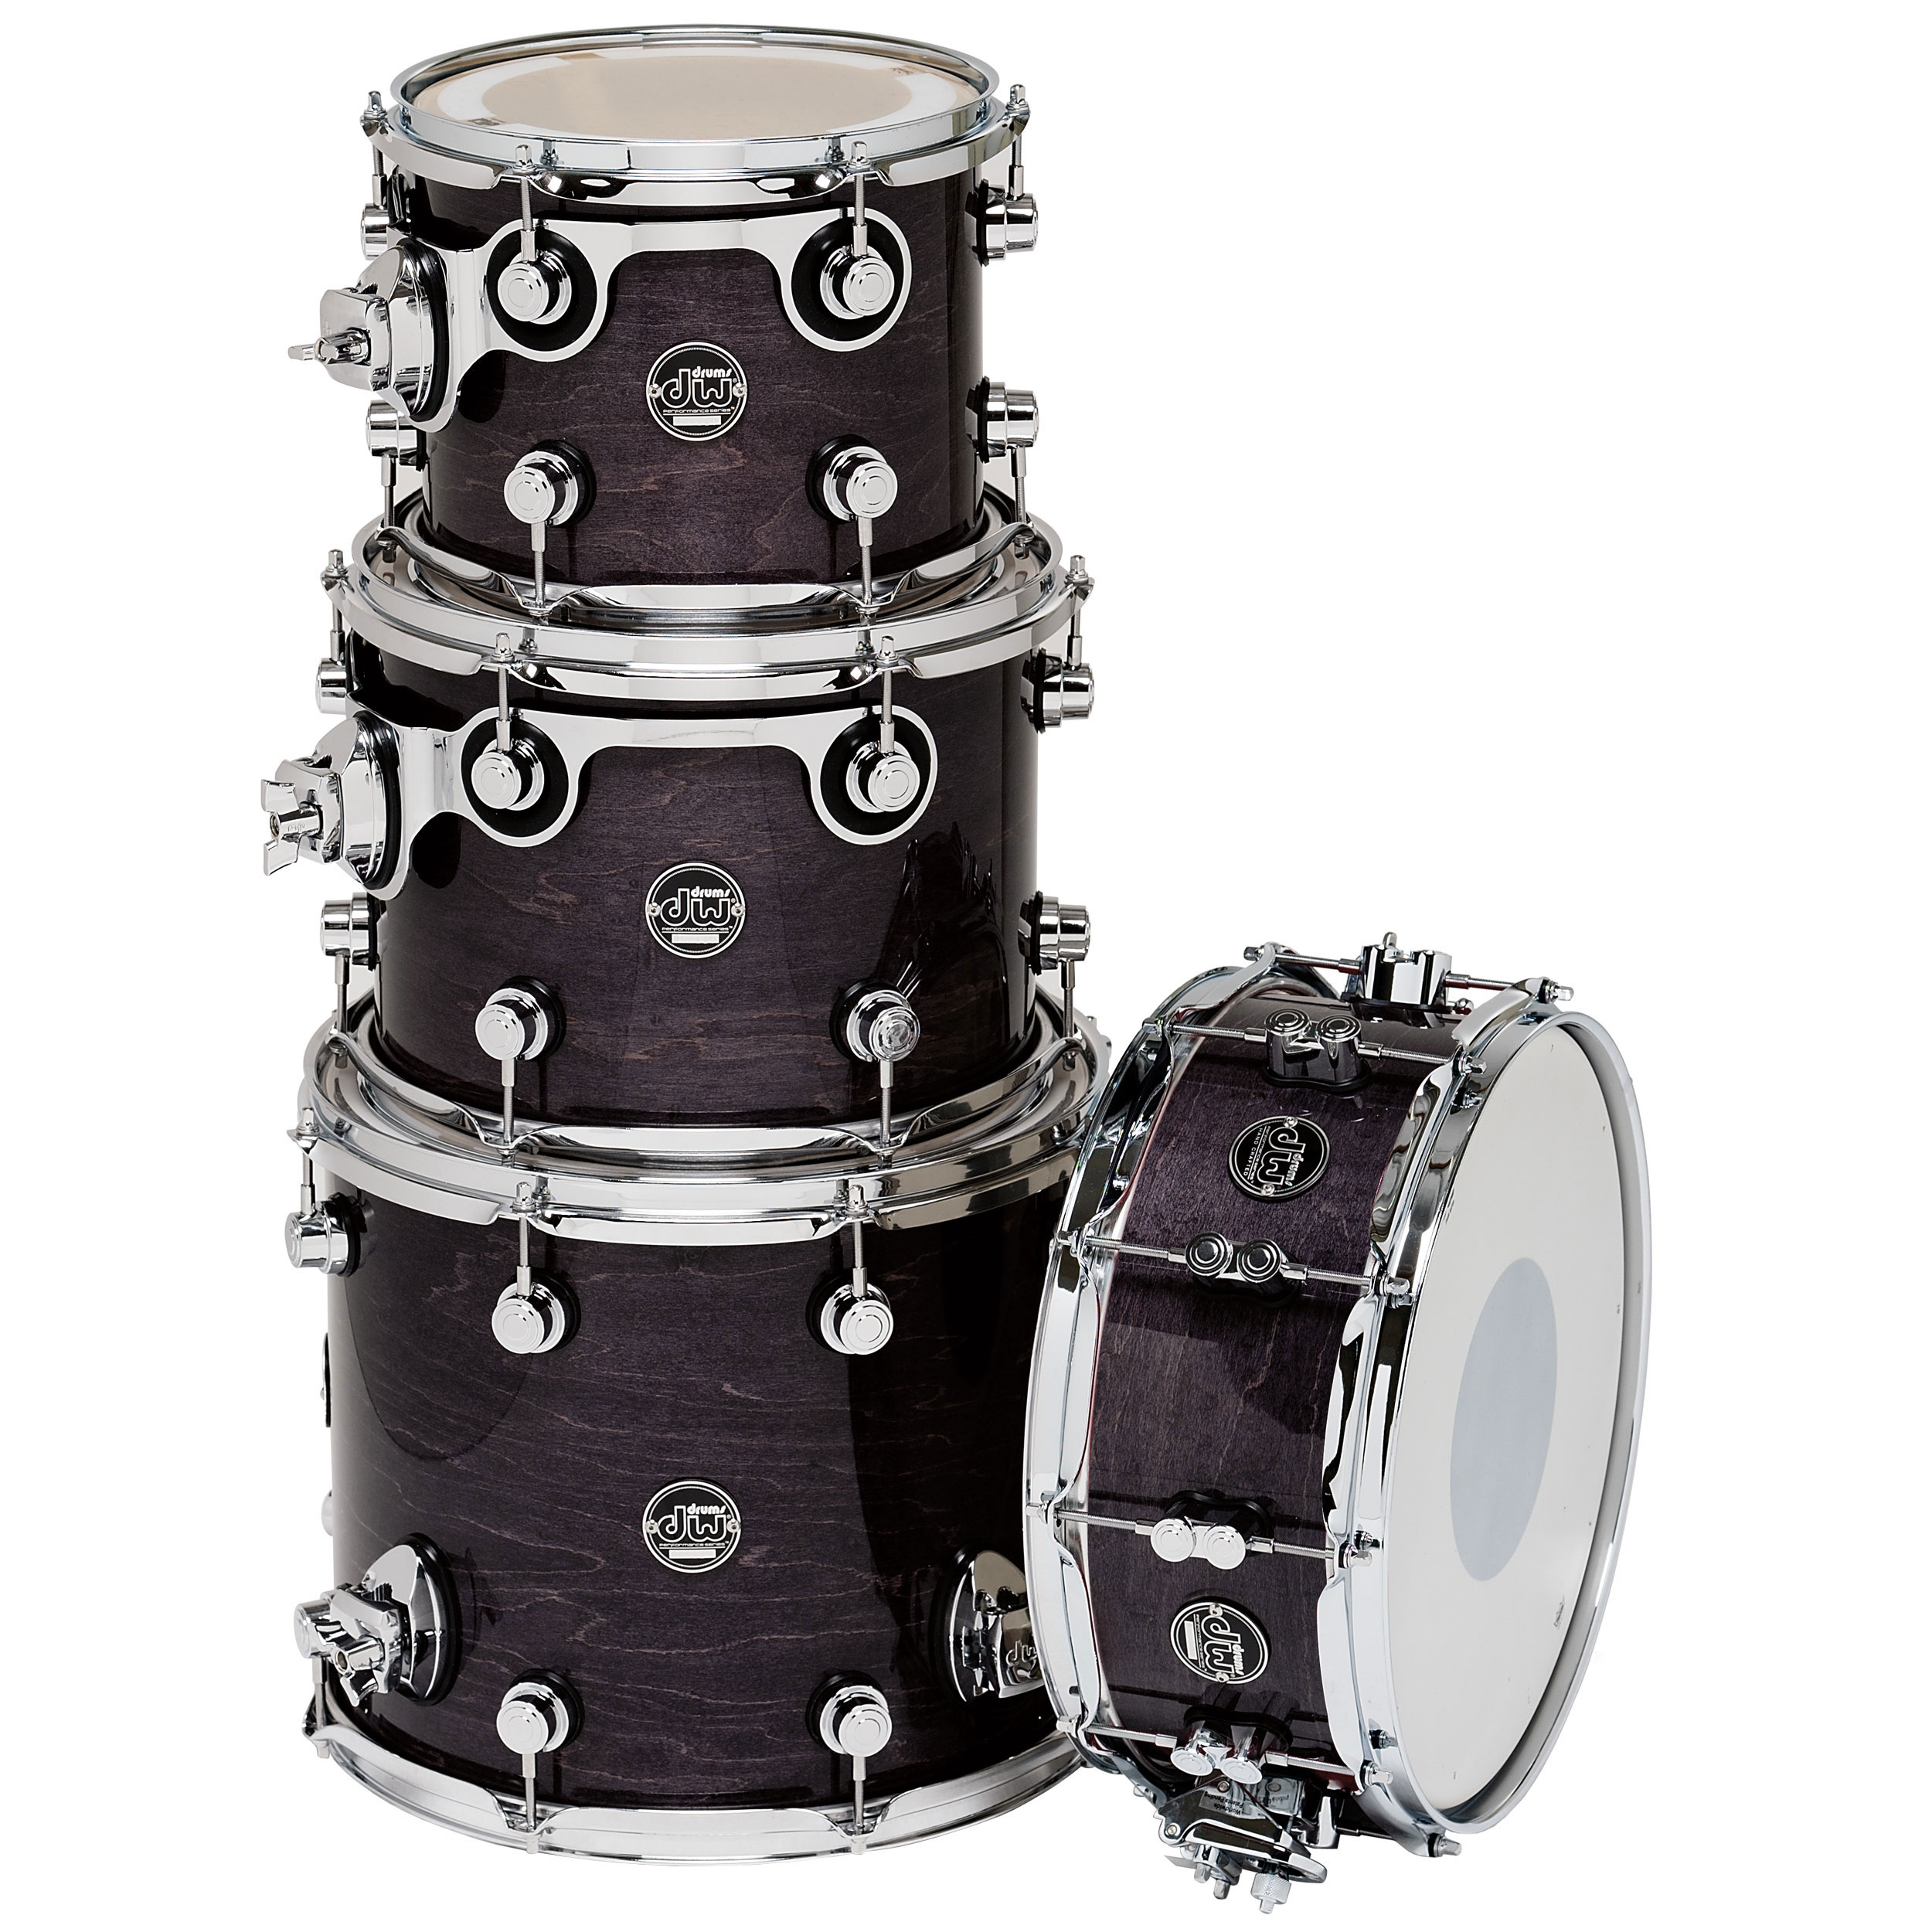 "DW Performance Drum Shell Pack (10/12/14"" Toms, 14"" Snare)"